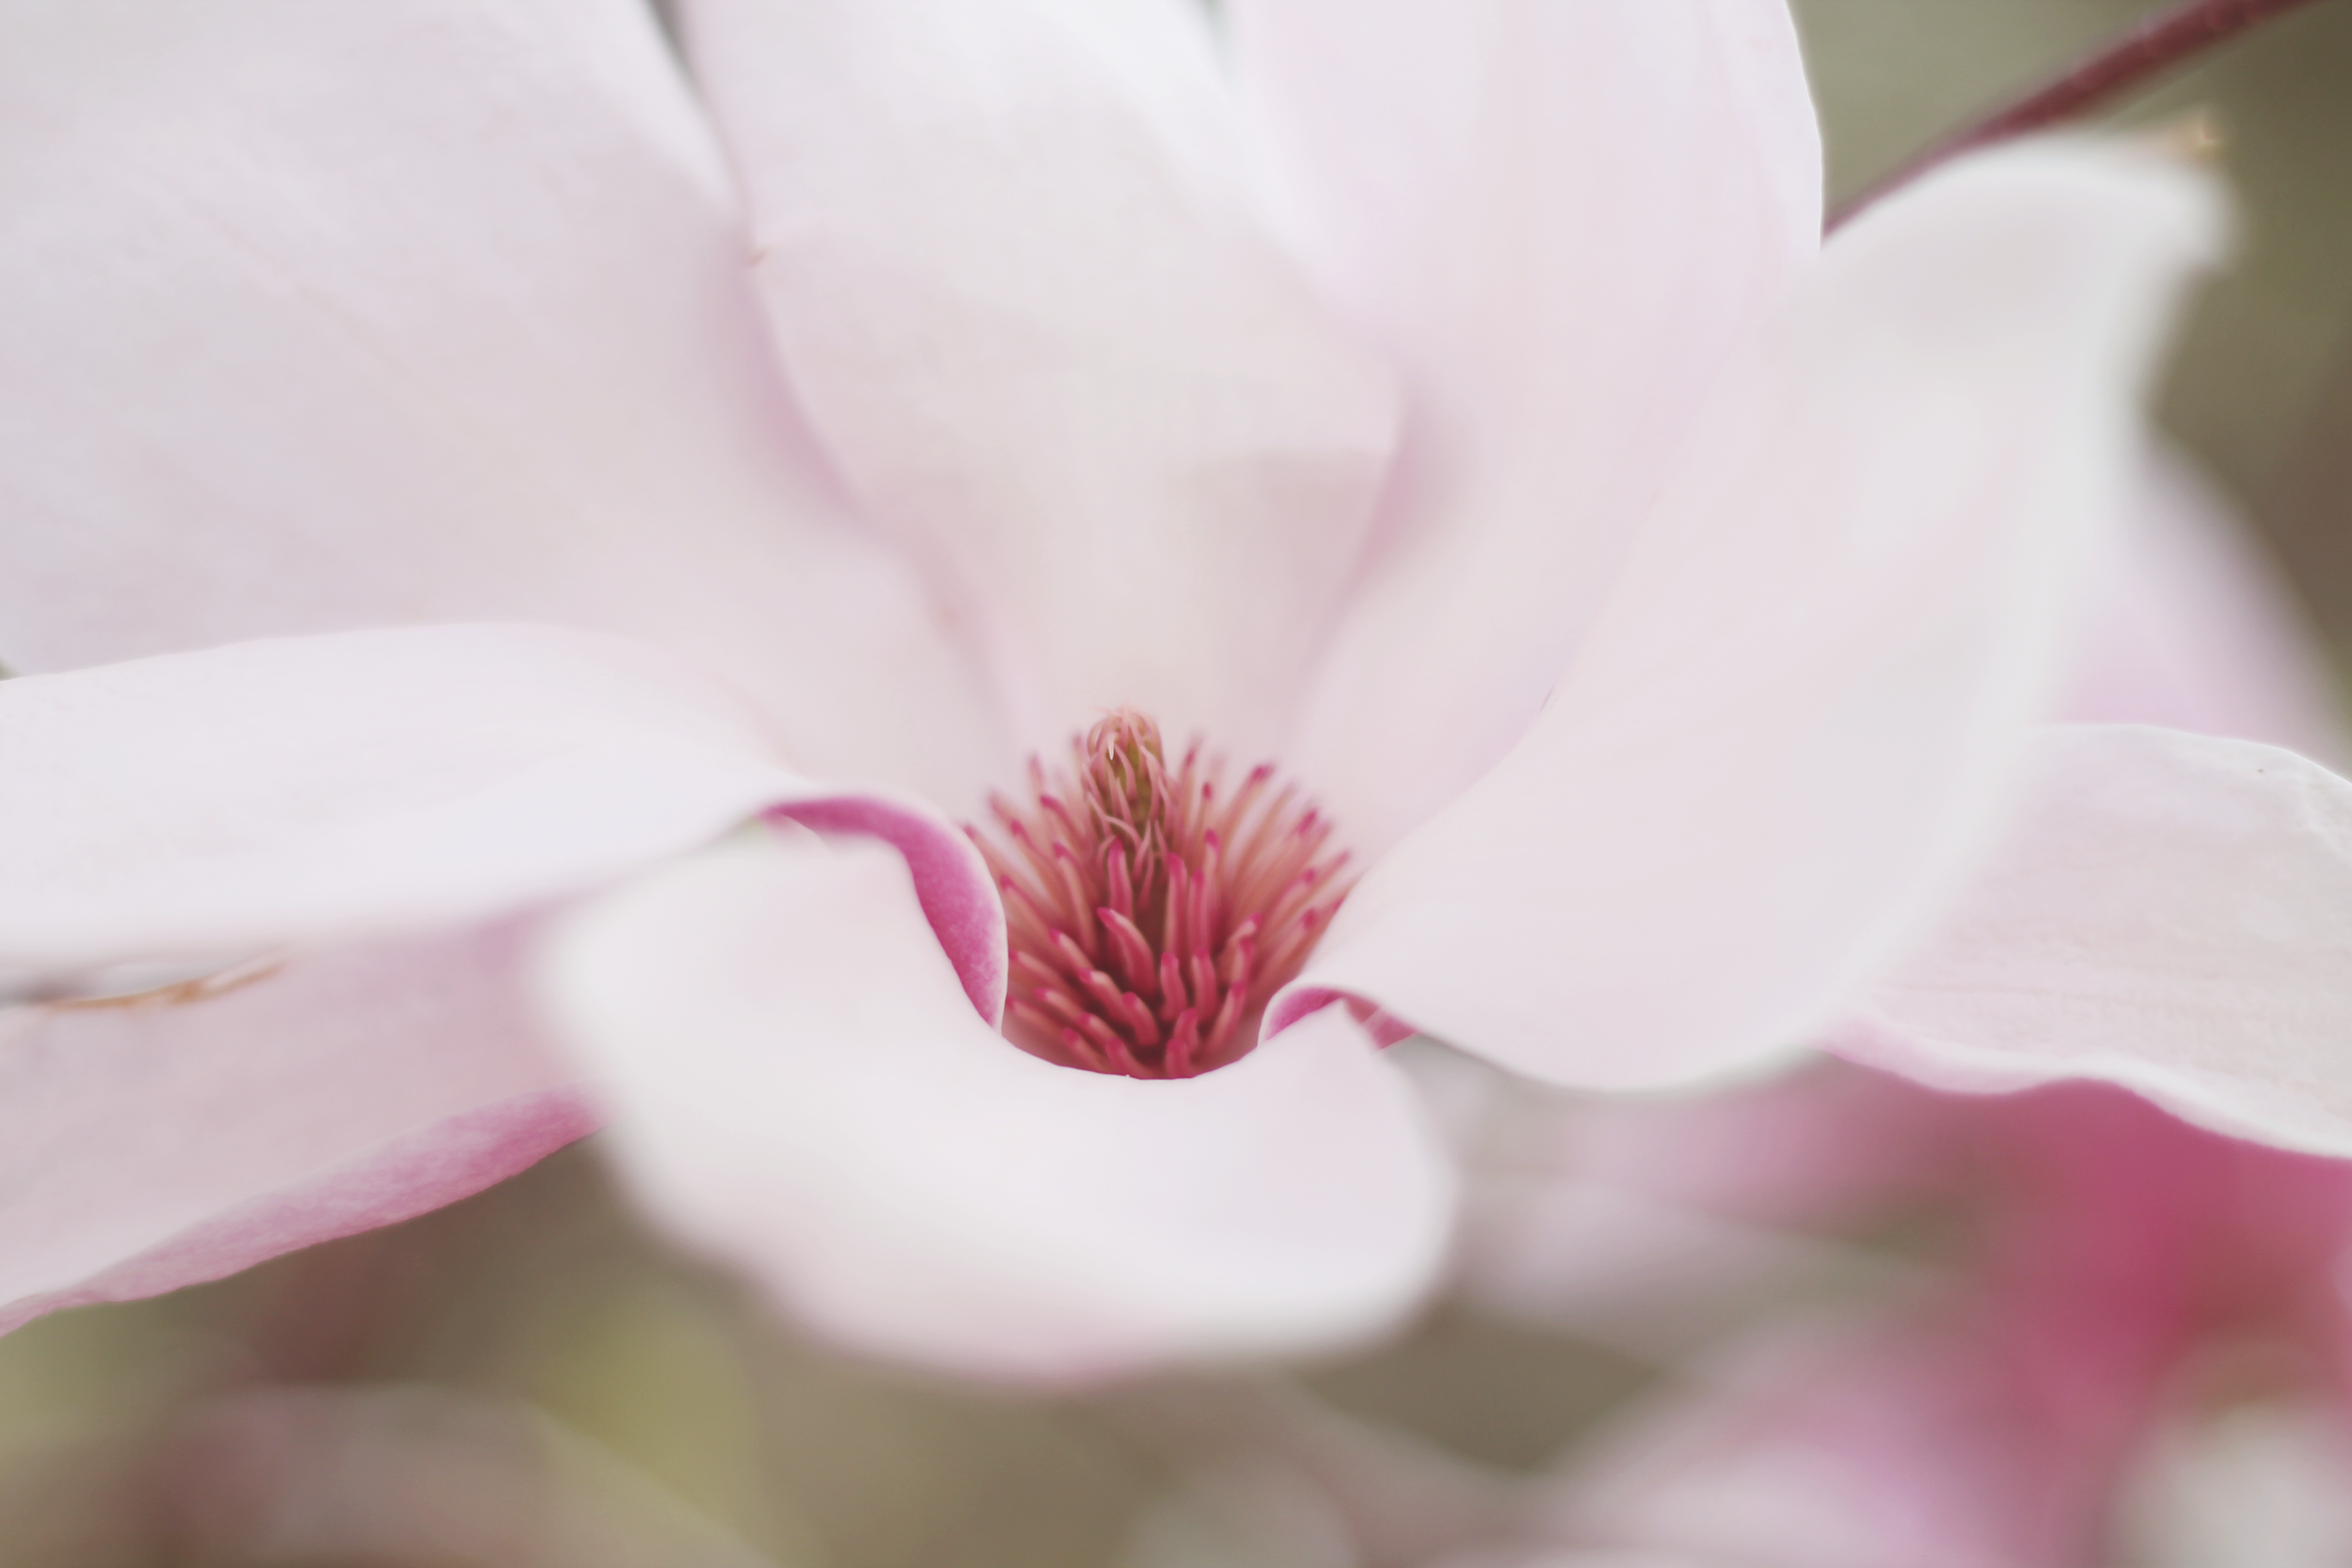 close-up selective-focus photo of pink petaled flower